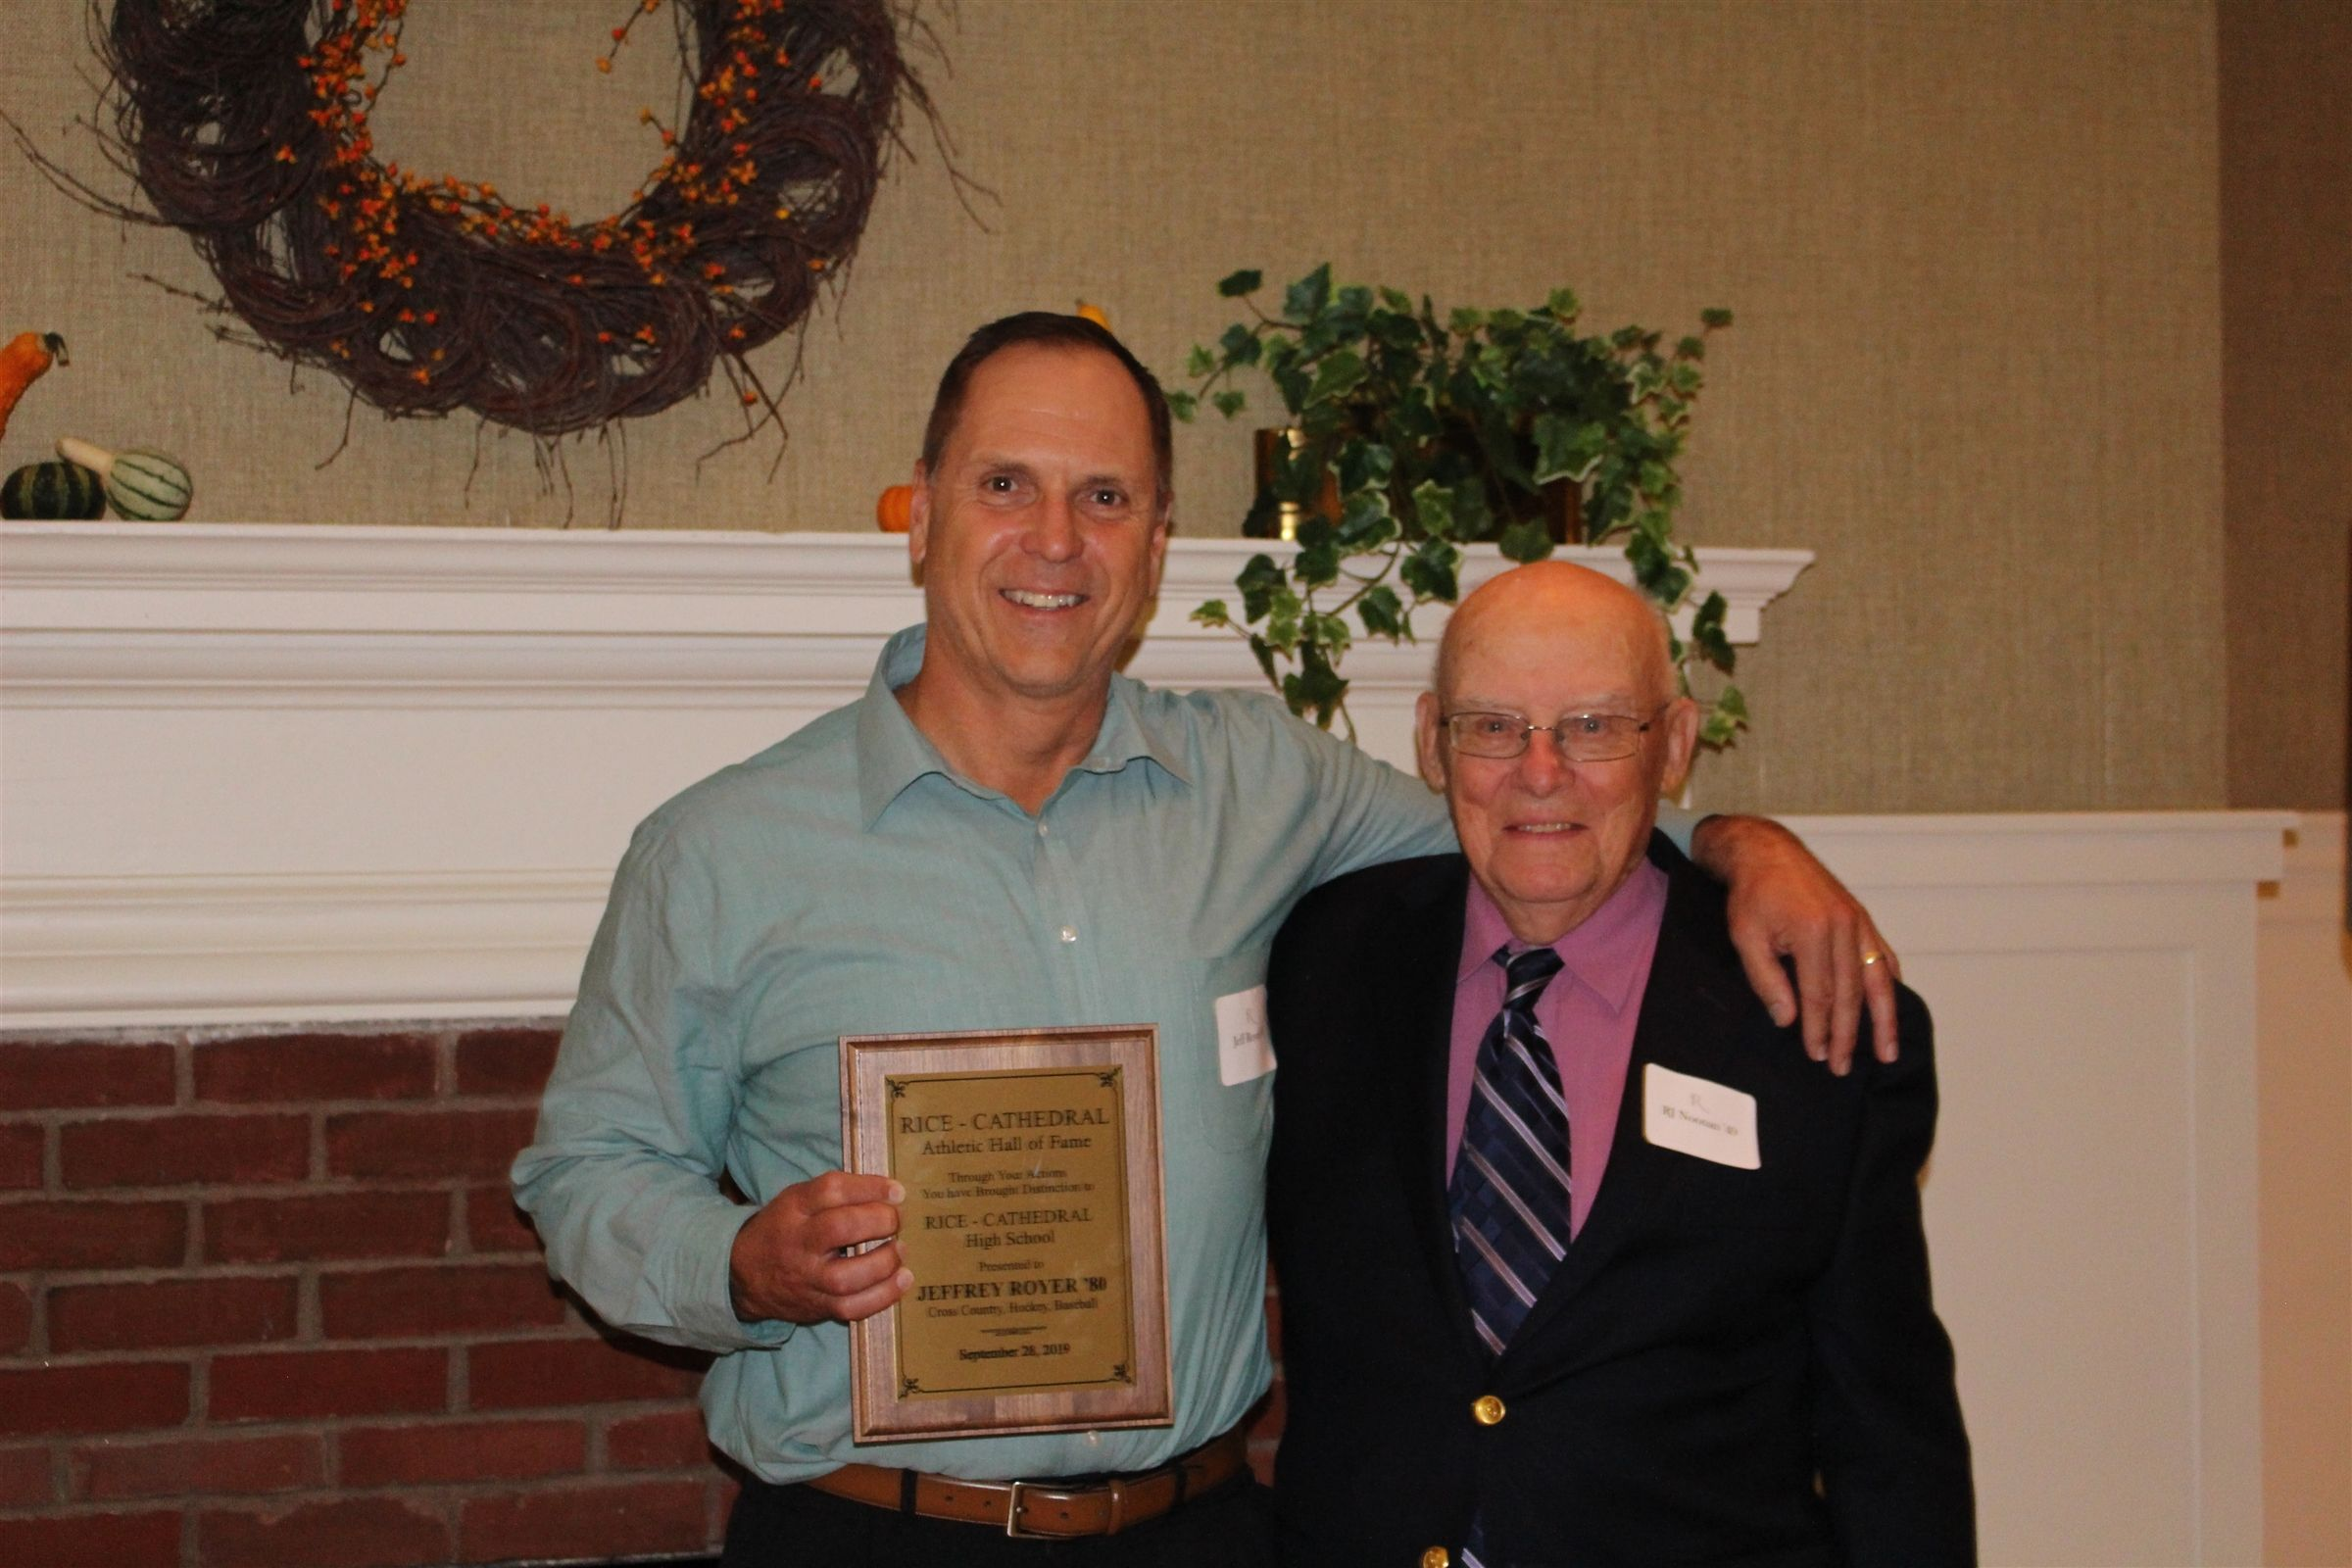 Inductee Jeff Royer '80 with former coach RJ Noonan '49